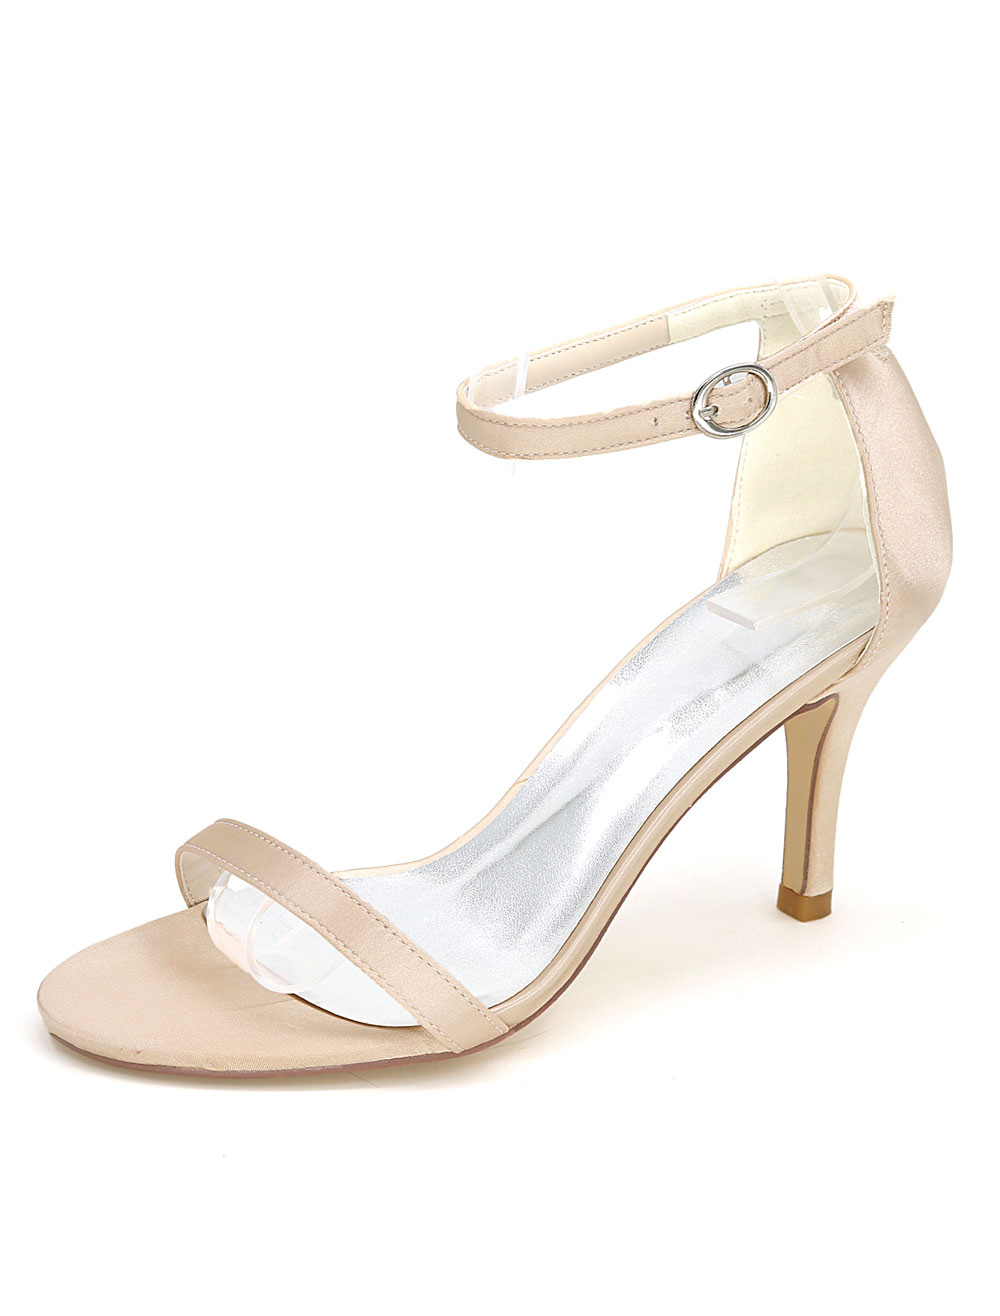 White Wedding Shoes High Heel Sandals Ankle Strap Open Toe Bridal Shoes